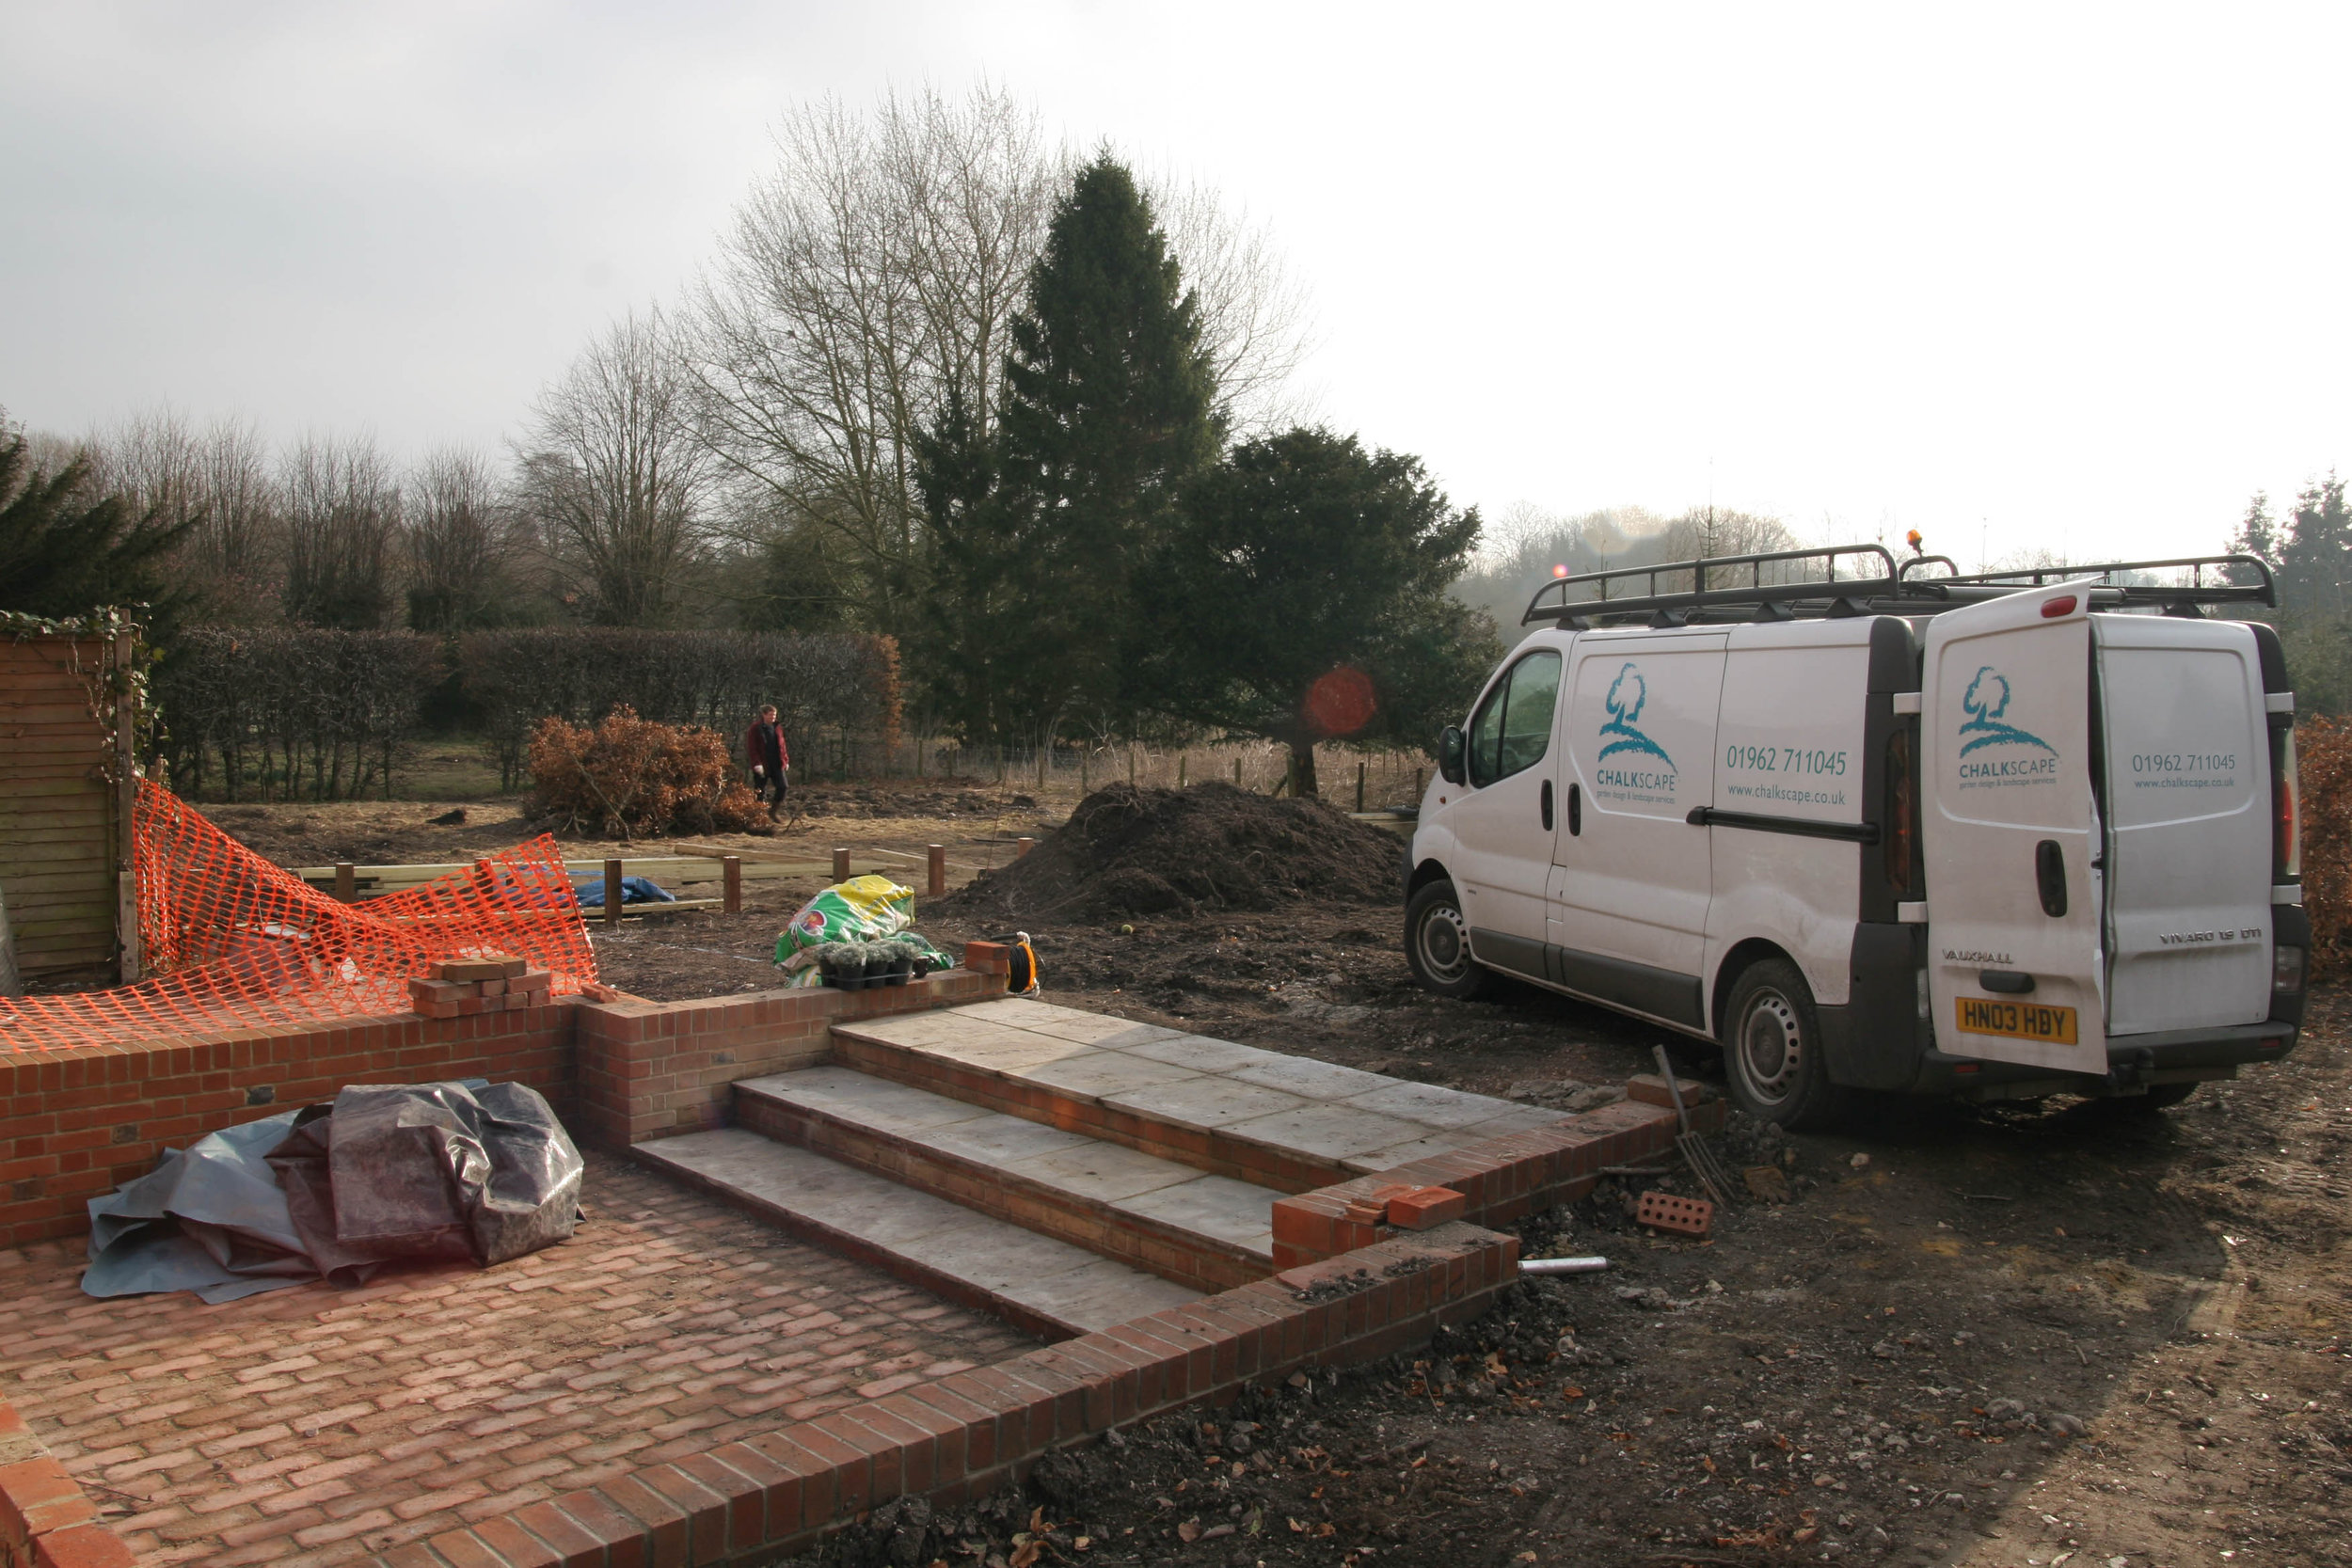 Finishing touches - working with other landscape firms the Chalkscape team start the soft landscaping of this newly created garden in Hampshire.